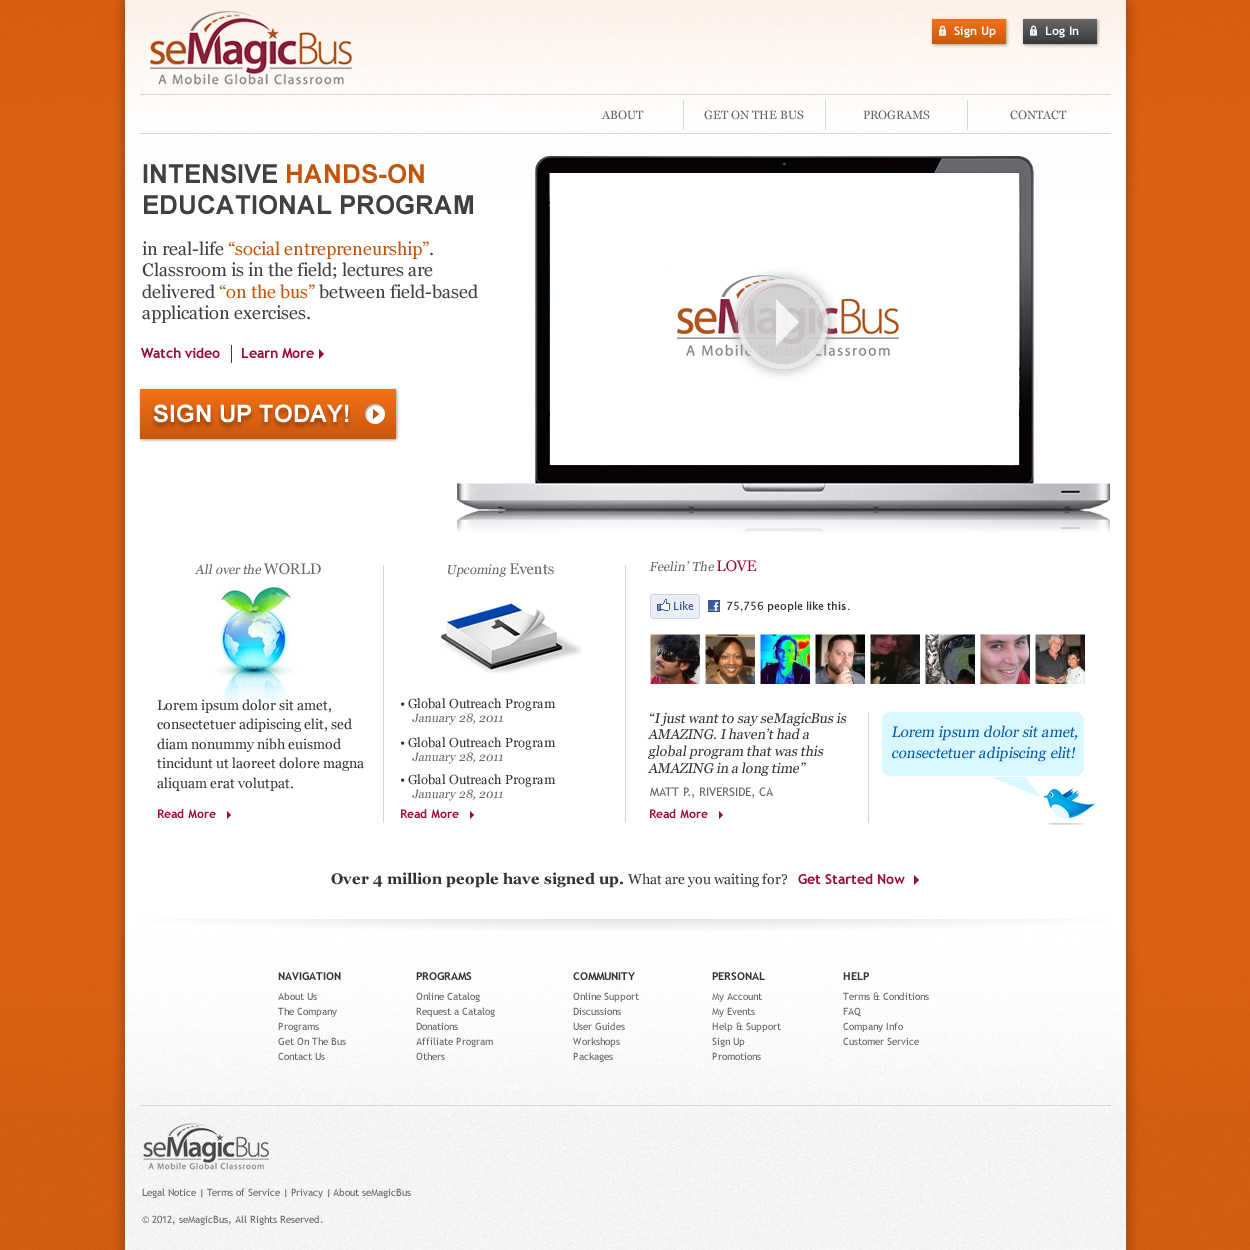 Web Page Design by johngabriel - Entry No. 21 in the Web Page Design Contest seMagicBus Website.